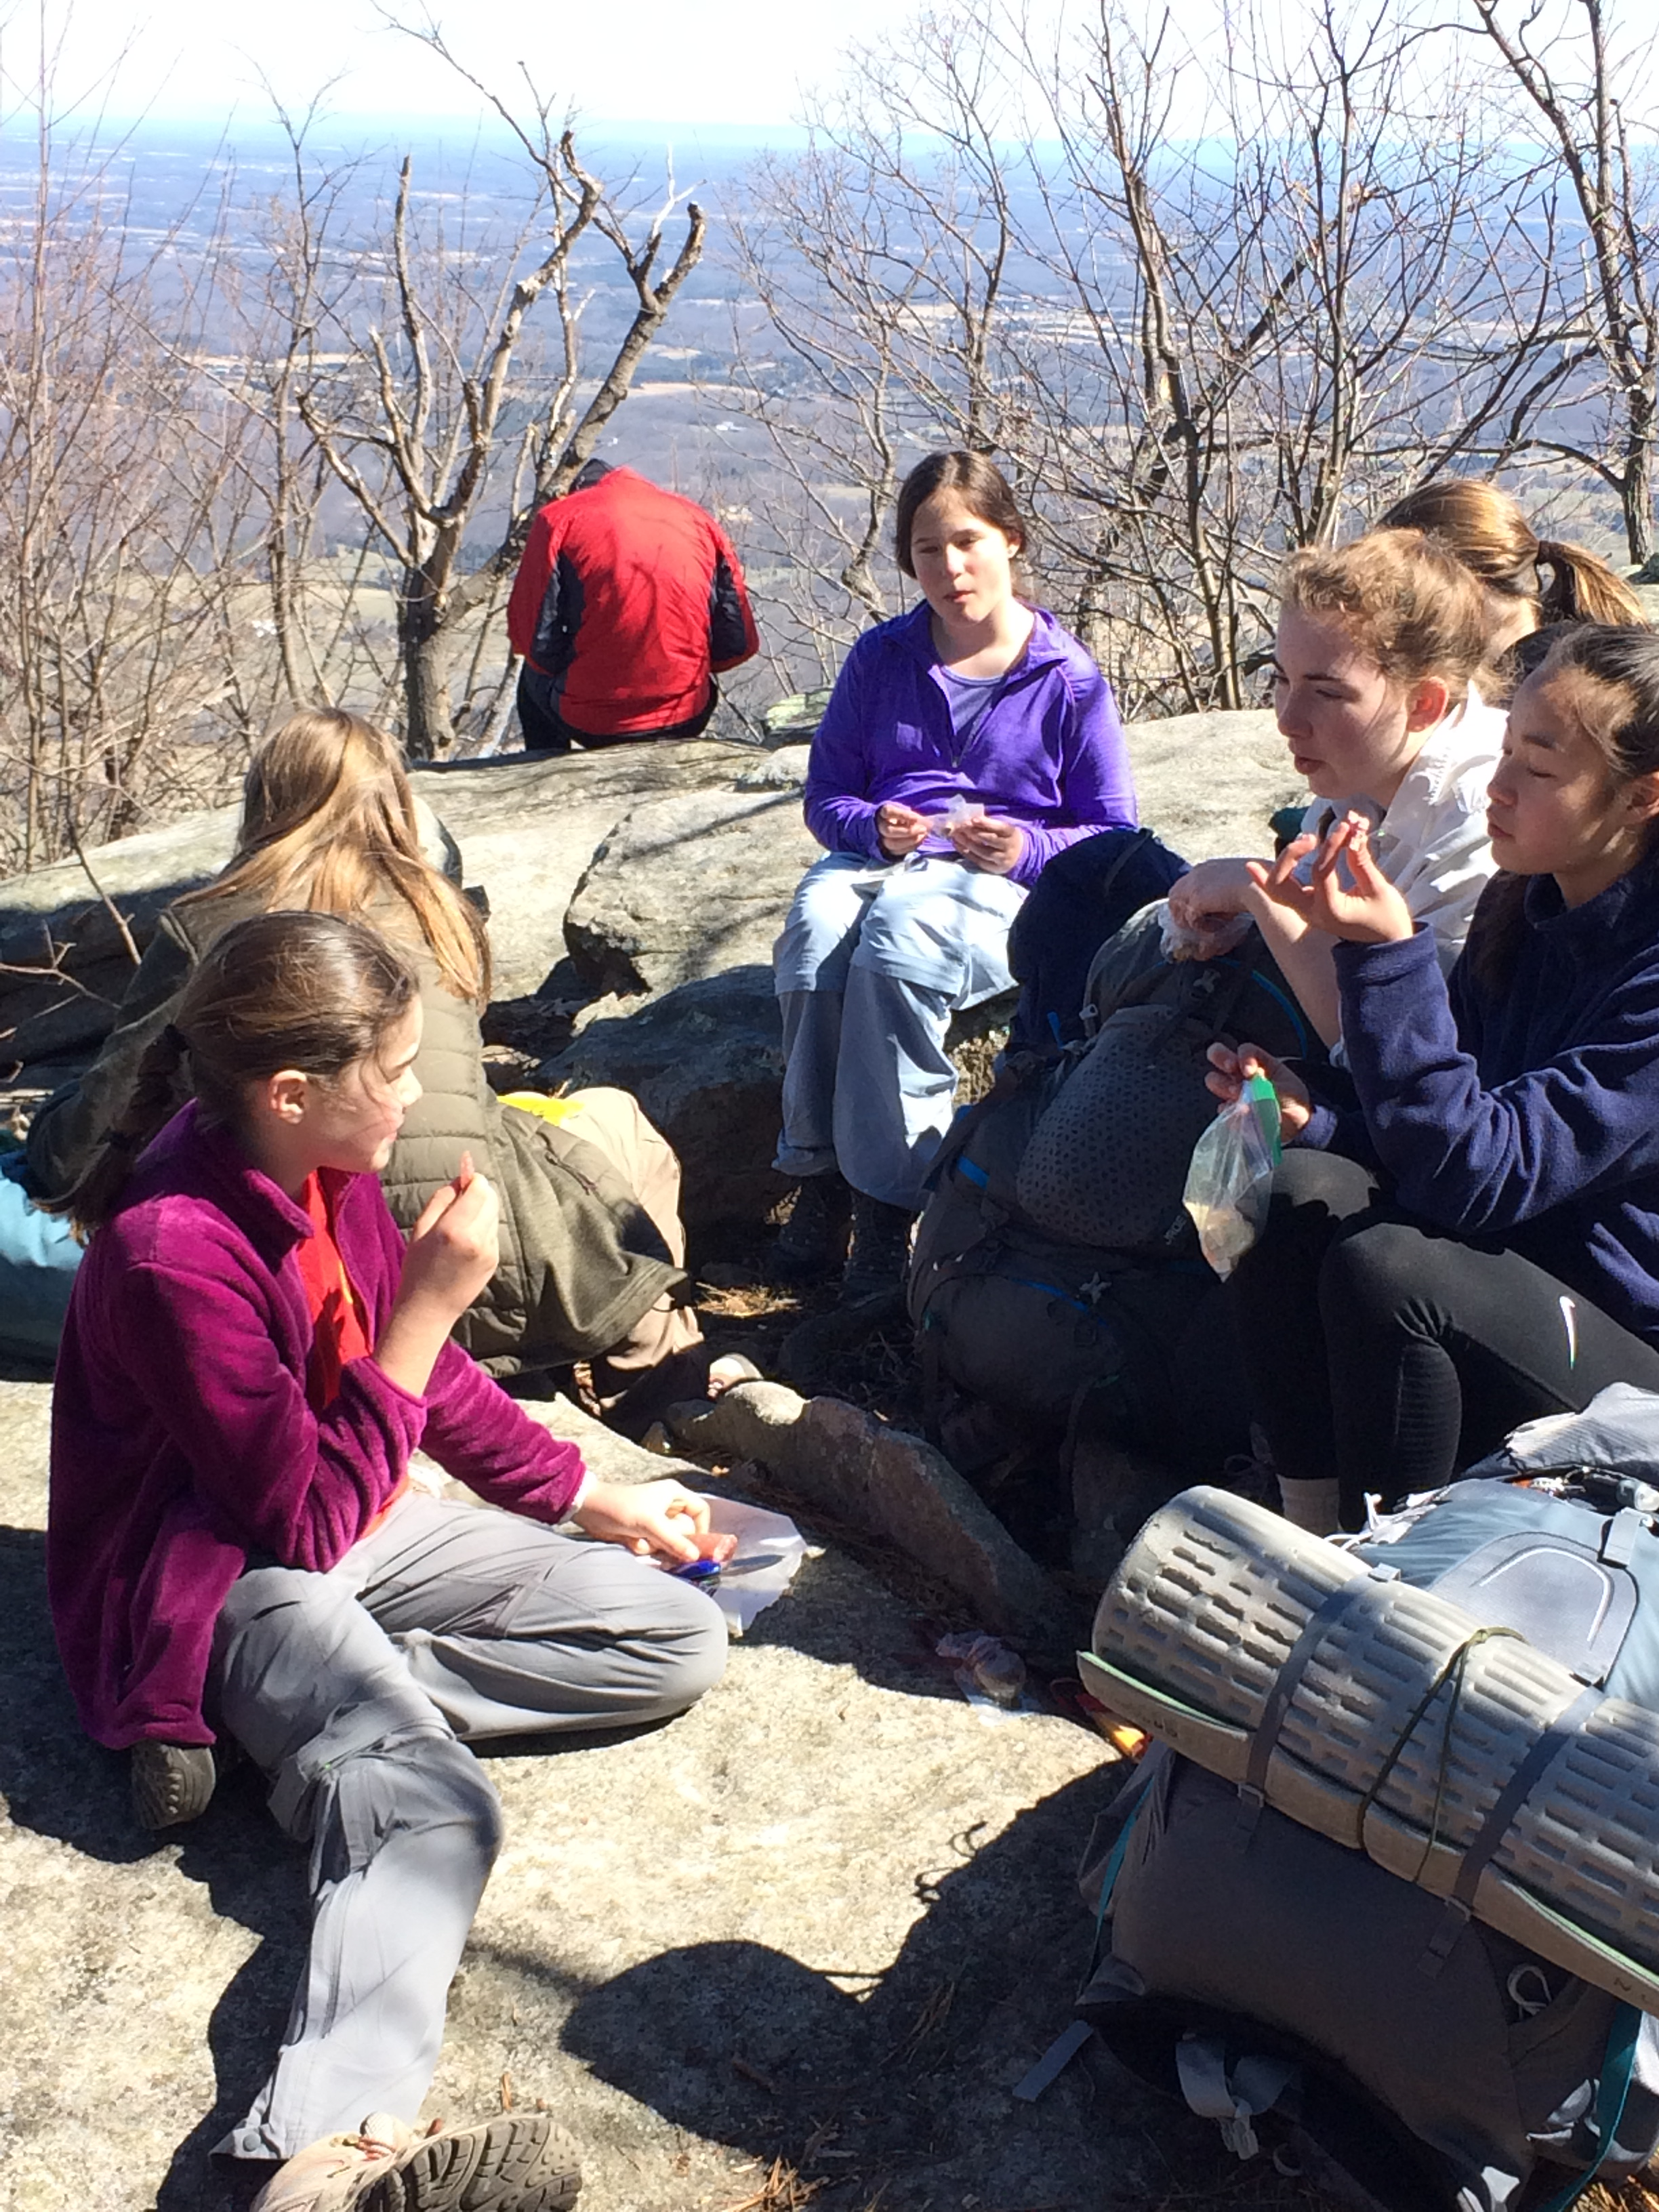 Girls BSA enjoy lunch at the top of their first mountain hiked together, overlooking the farmland below at a place called Signal Knob.